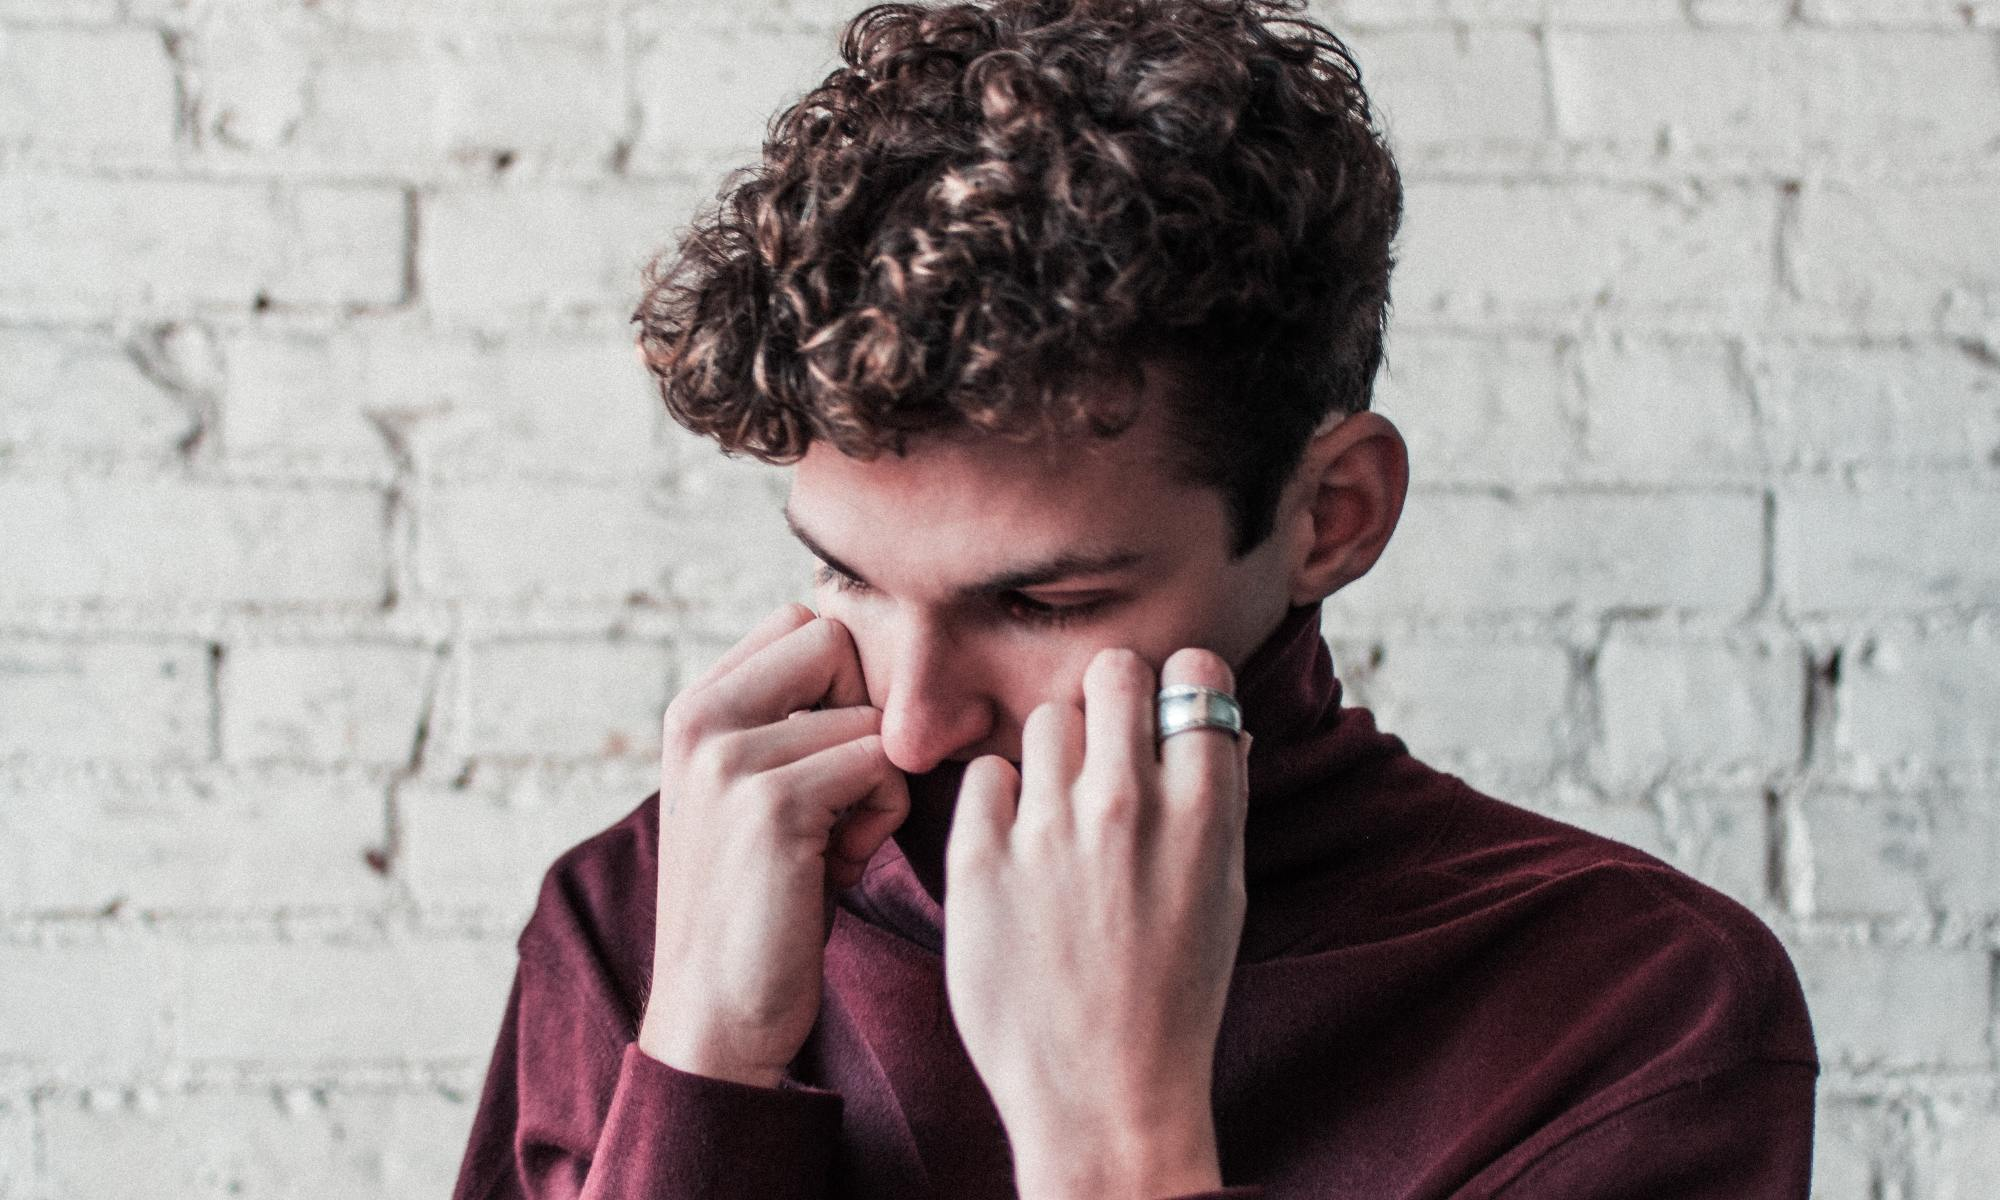 White person with brown curly hair covering up his mouth with his red shirt collar.